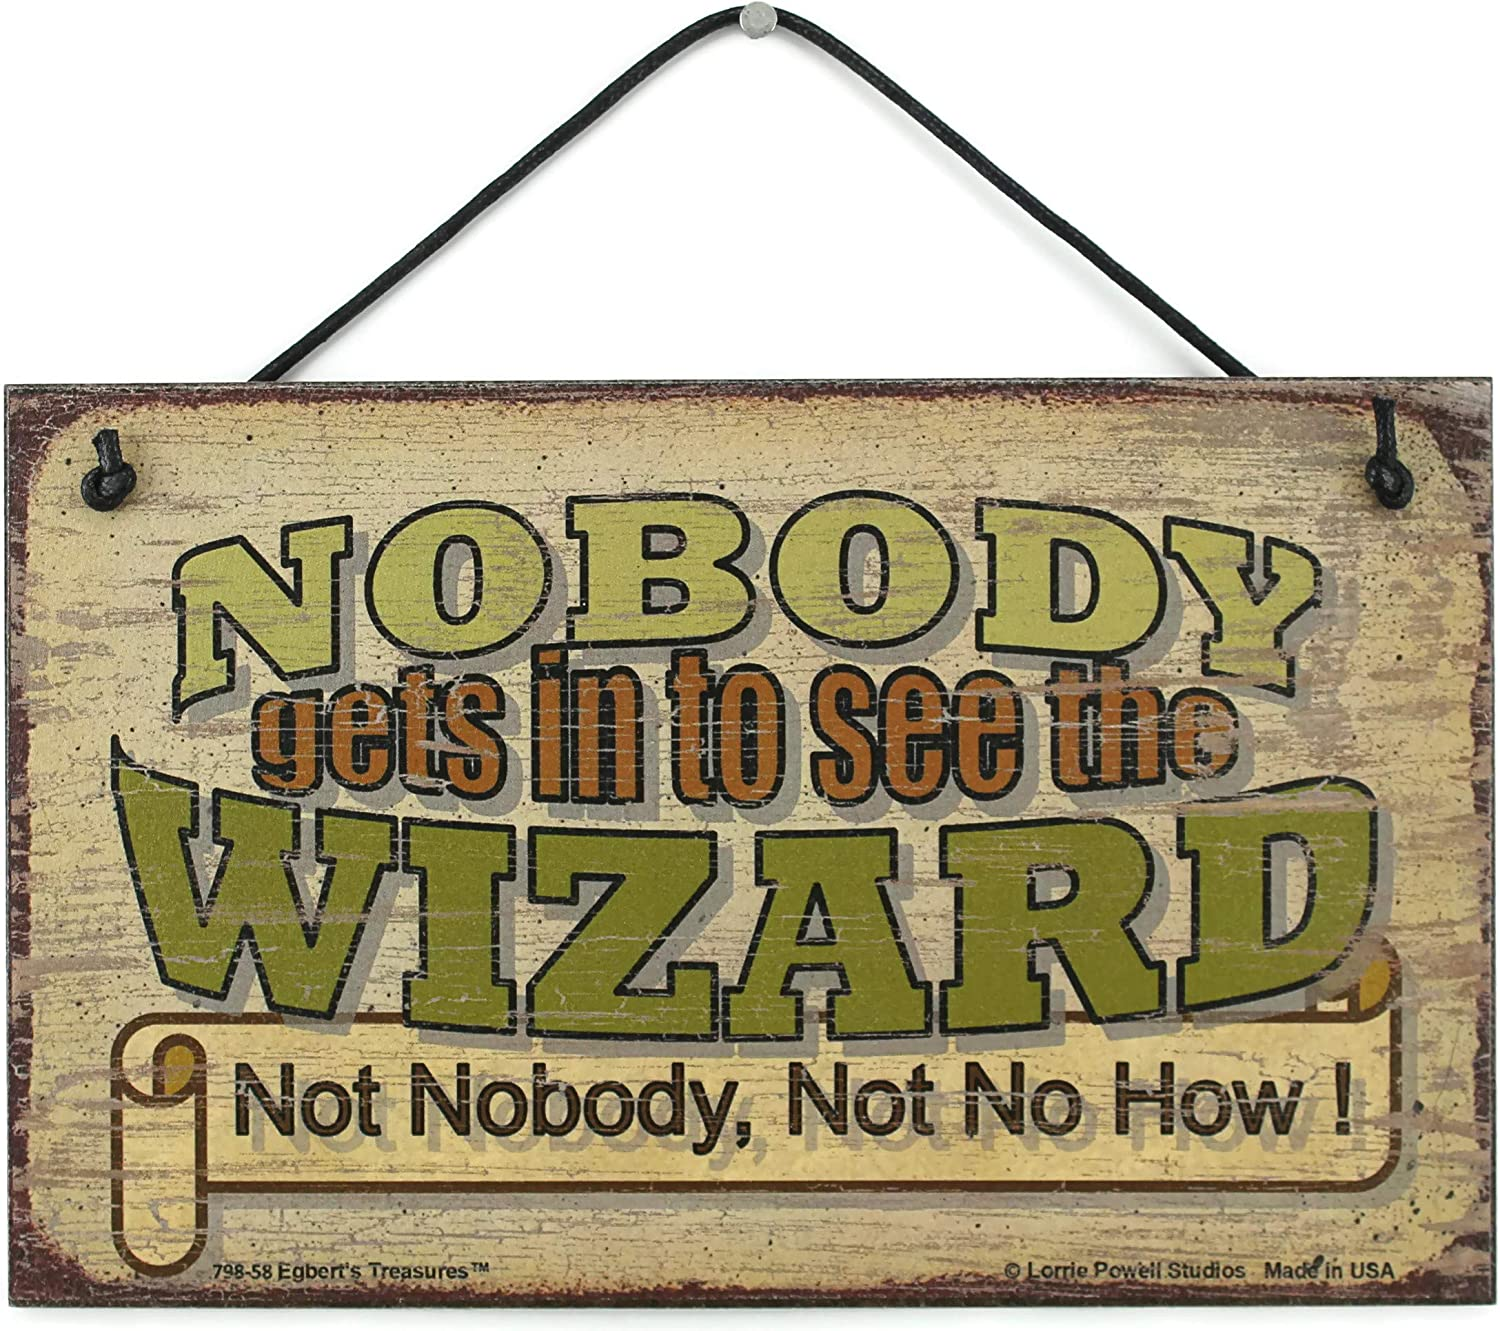 Egbert's Treasures 5x8 Vintage Style Sign Saying, Nobody gets in to See The Wizard Not Nobody, Not No How! Decorative Fun Universal Household Family Signs with Quotes for Your Home (5x8)